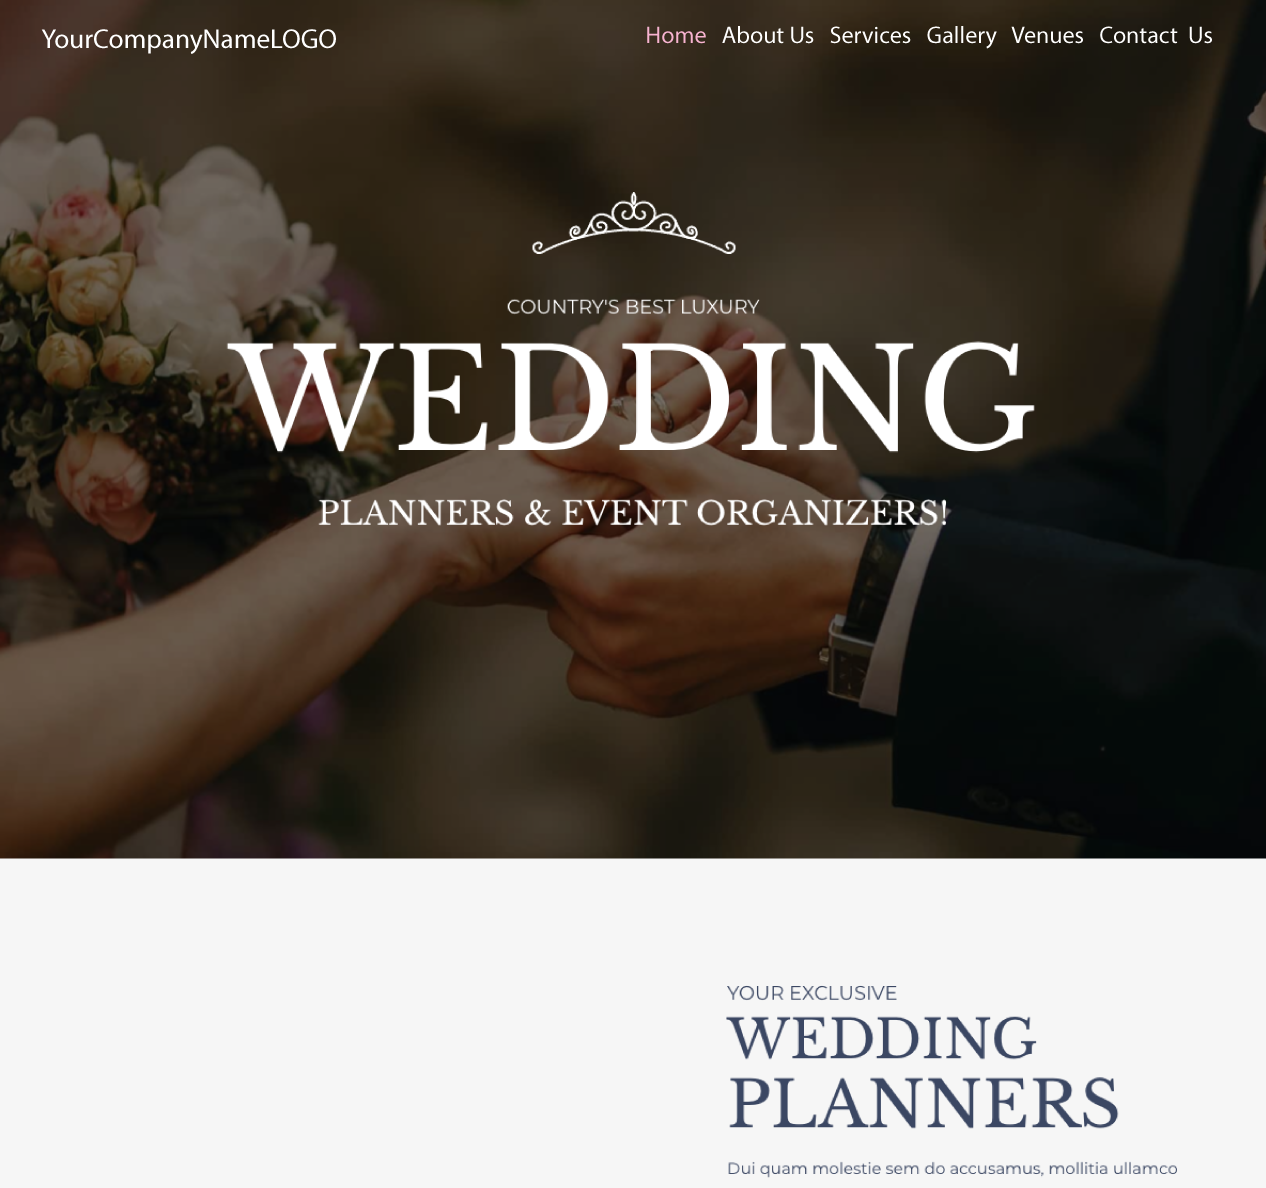 Center Image of Wedding Planner